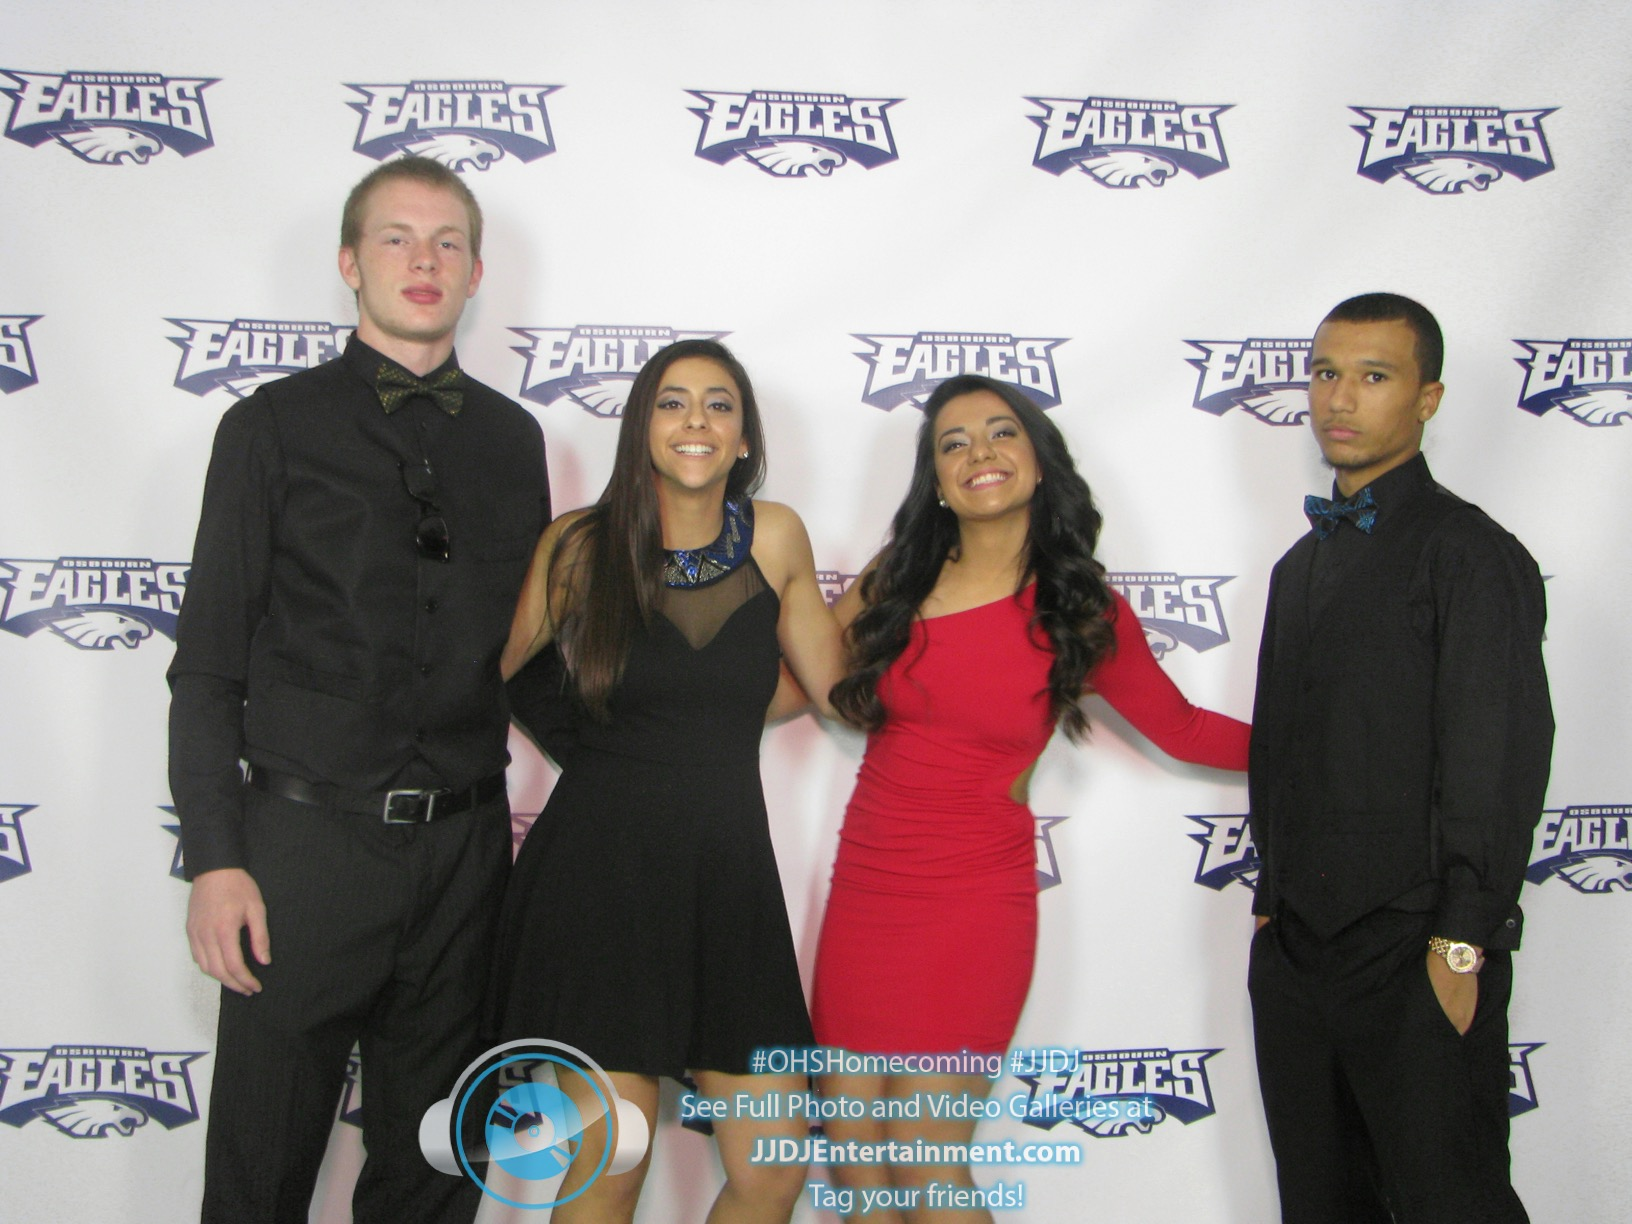 OHS 2014 Homecoming Photobooth -136